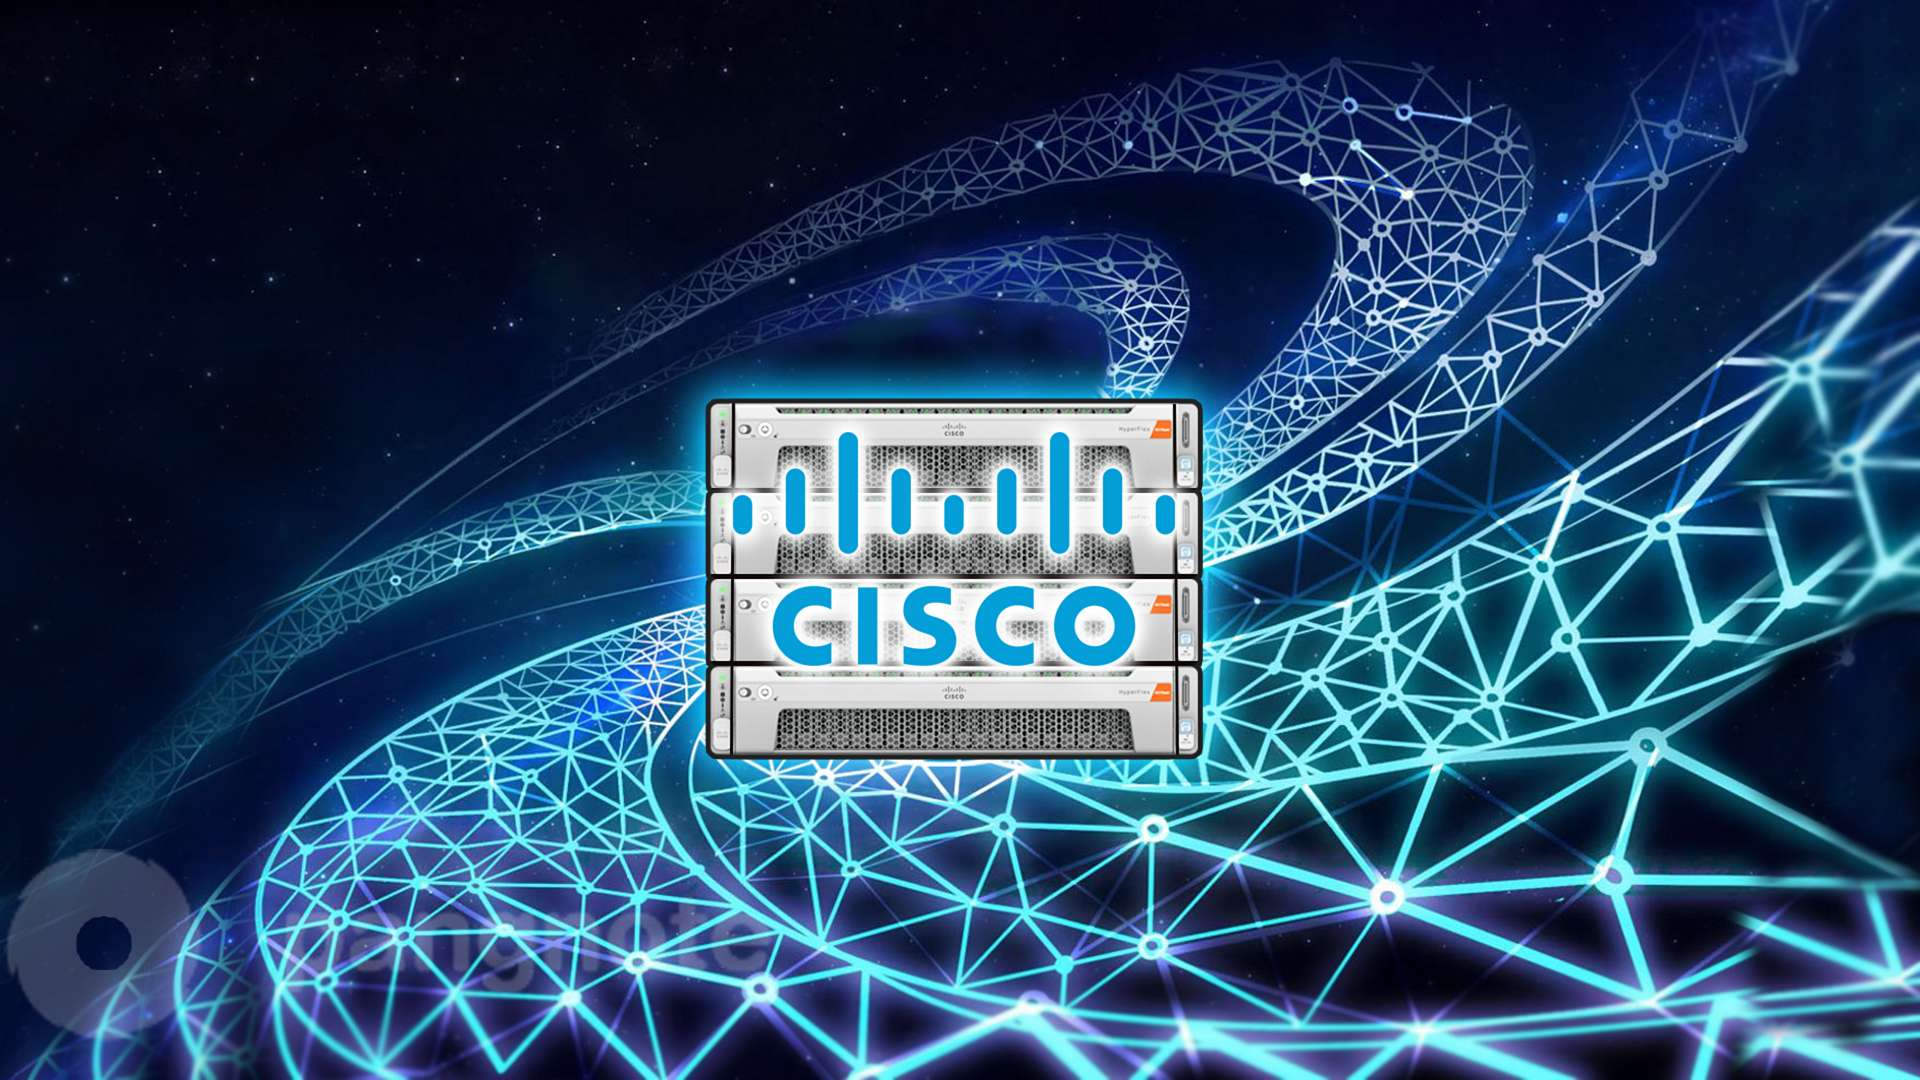 Cisco is developing a hyperconvergent ecosystem